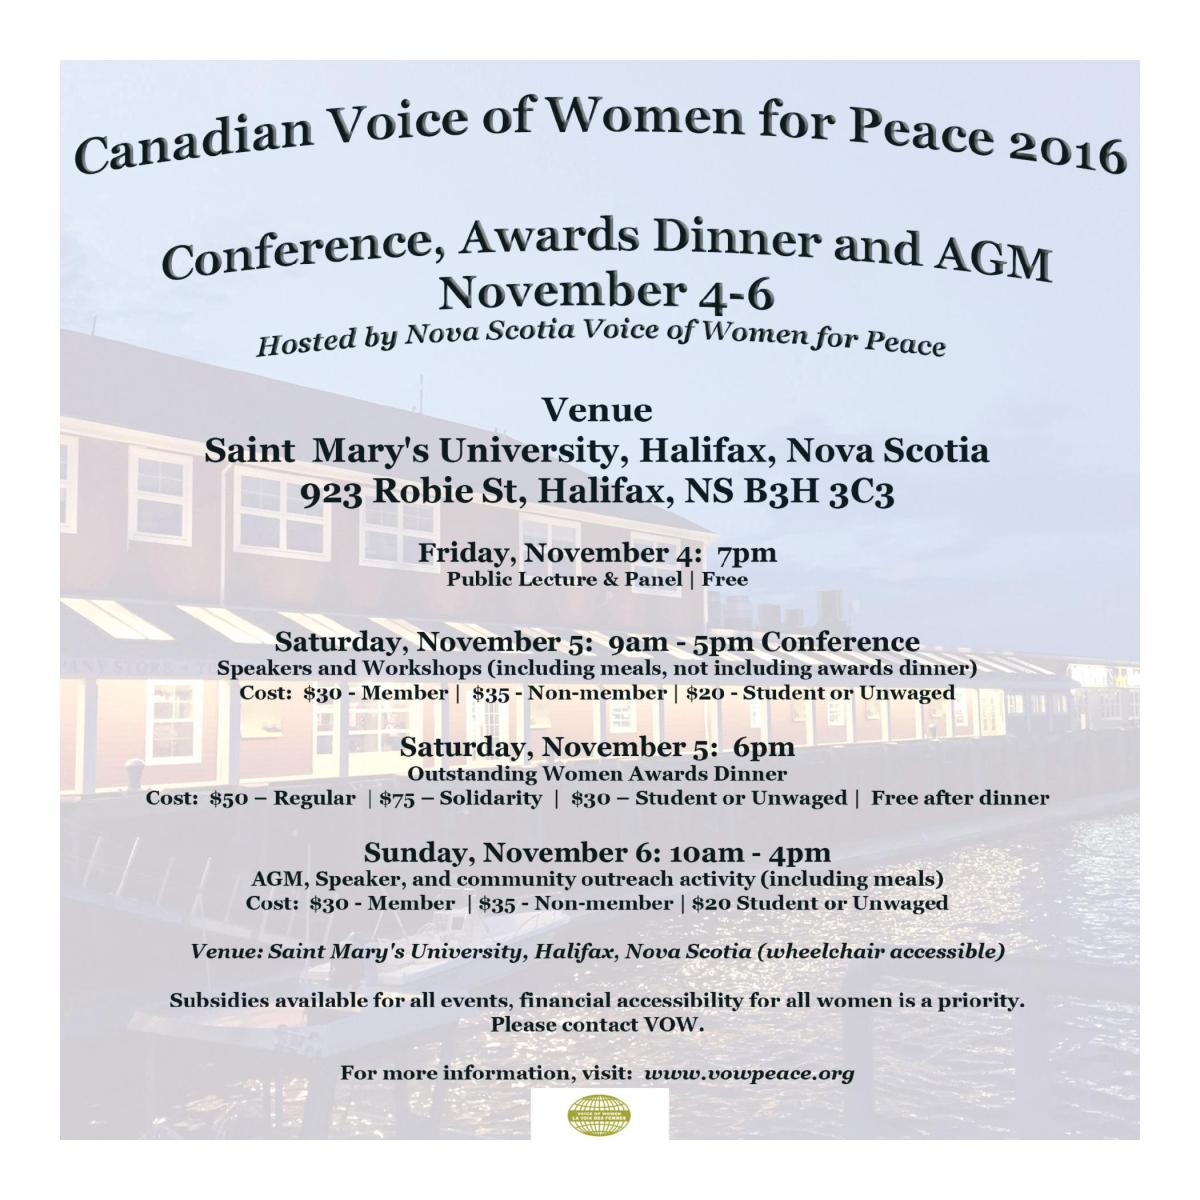 Conference, Awards Dinner and AGM